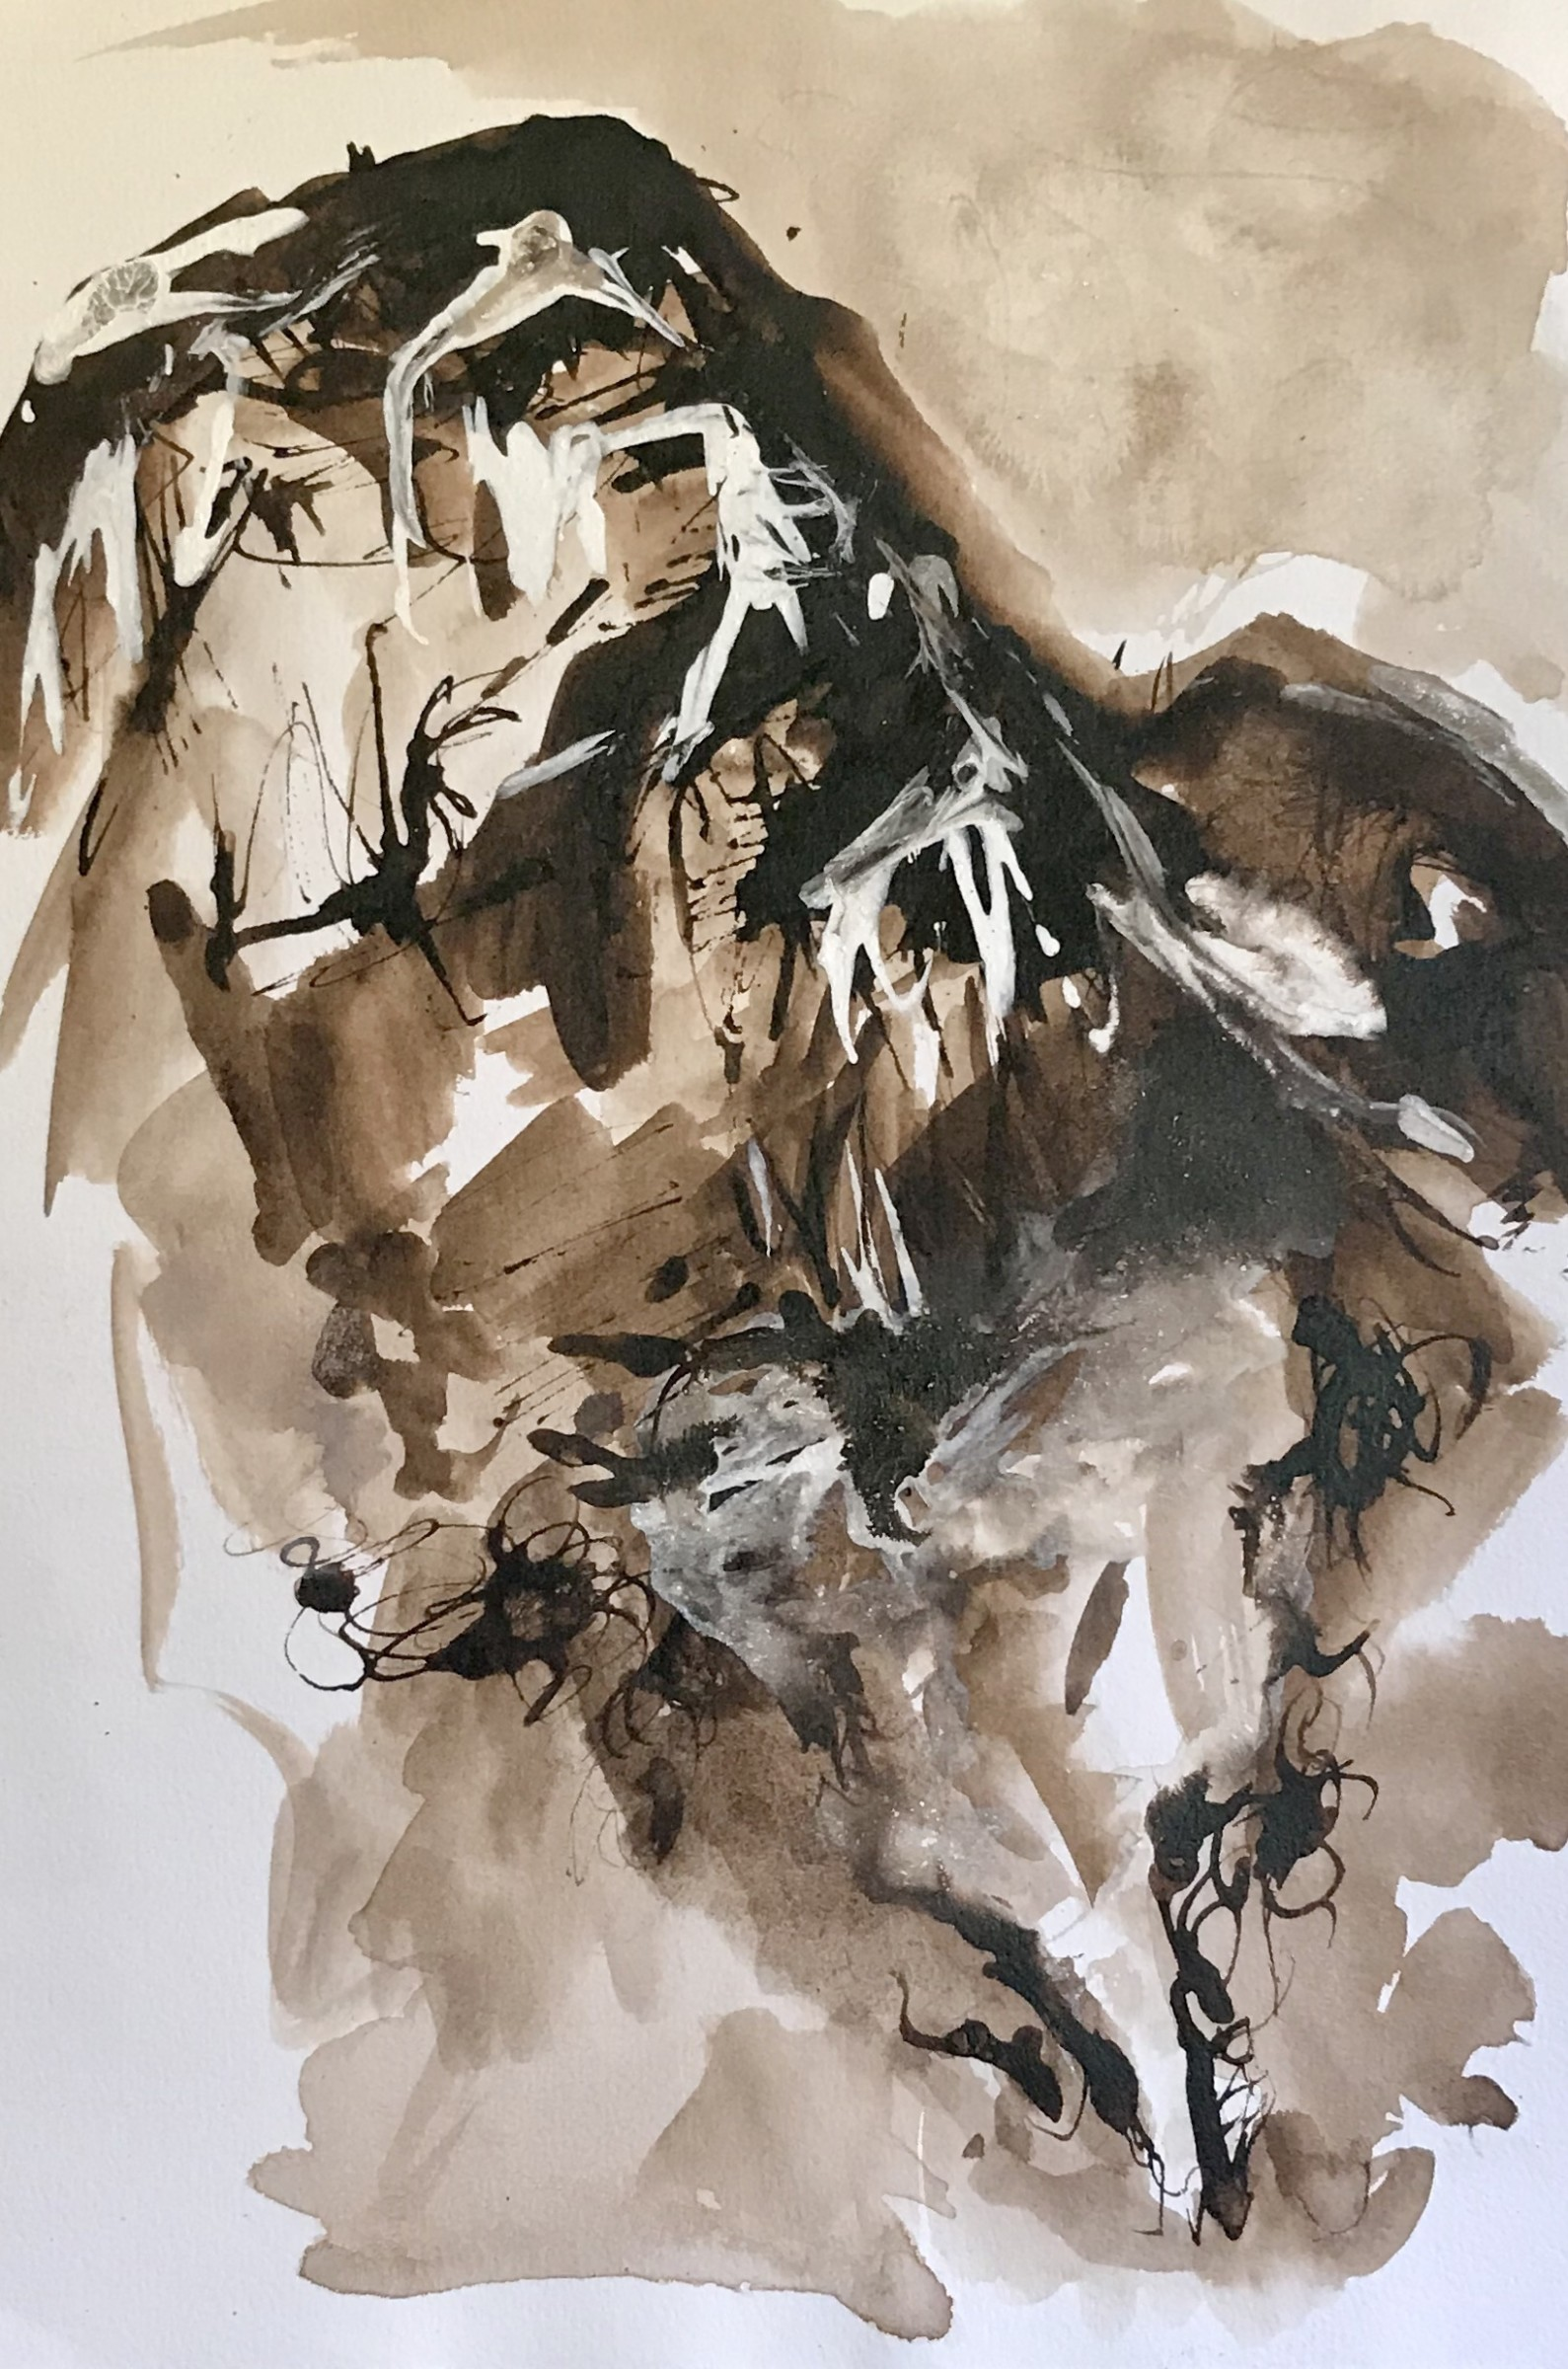 """<span class=""""link fancybox-details-link""""><a href=""""/exhibitions/22/works/artworks_standalone11114/"""">View Detail Page</a></span><div class=""""artist""""><span class=""""artist""""><strong>Jackie Newell RE</strong></span></div><div class=""""title""""><em>Le Cochet</em></div><div class=""""medium"""">mixed media and acrylic painting</div><div class=""""dimensions"""">43 x 33 cm framed<br>30 x 21 cm image size</div>"""